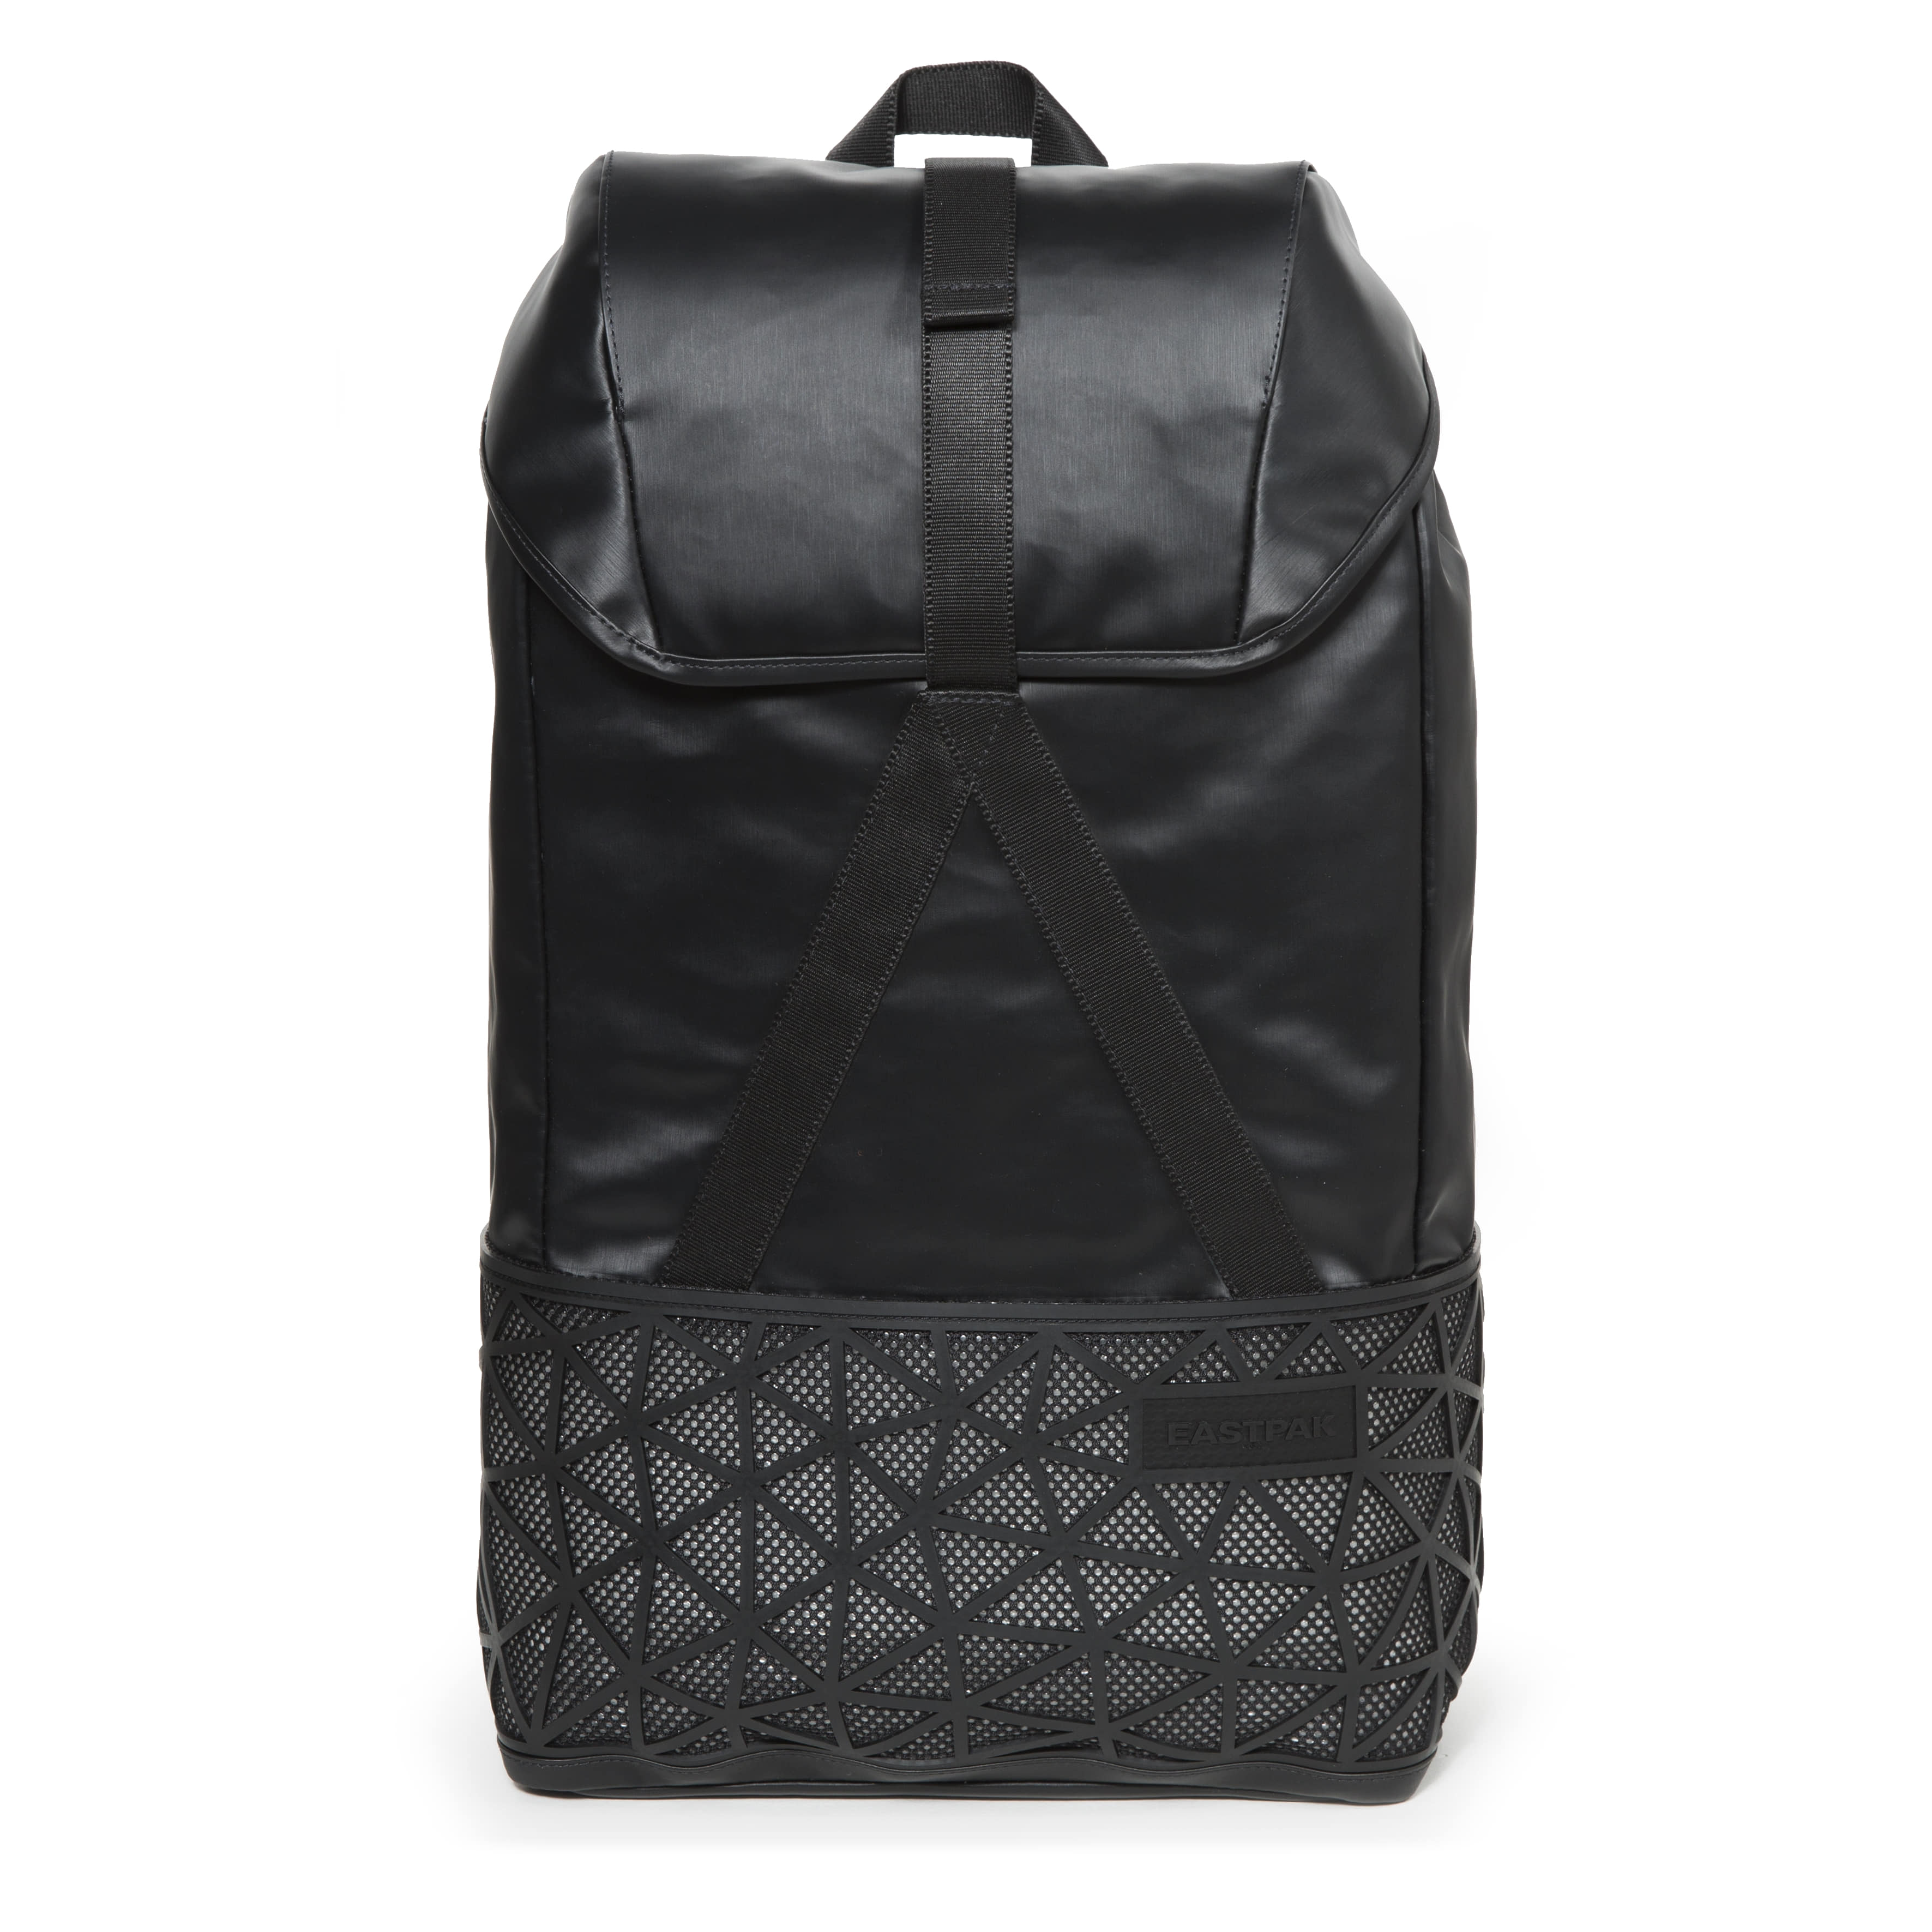 [EASTPAK] WIRED LAB 백팩 버스트 EIABA22 69S